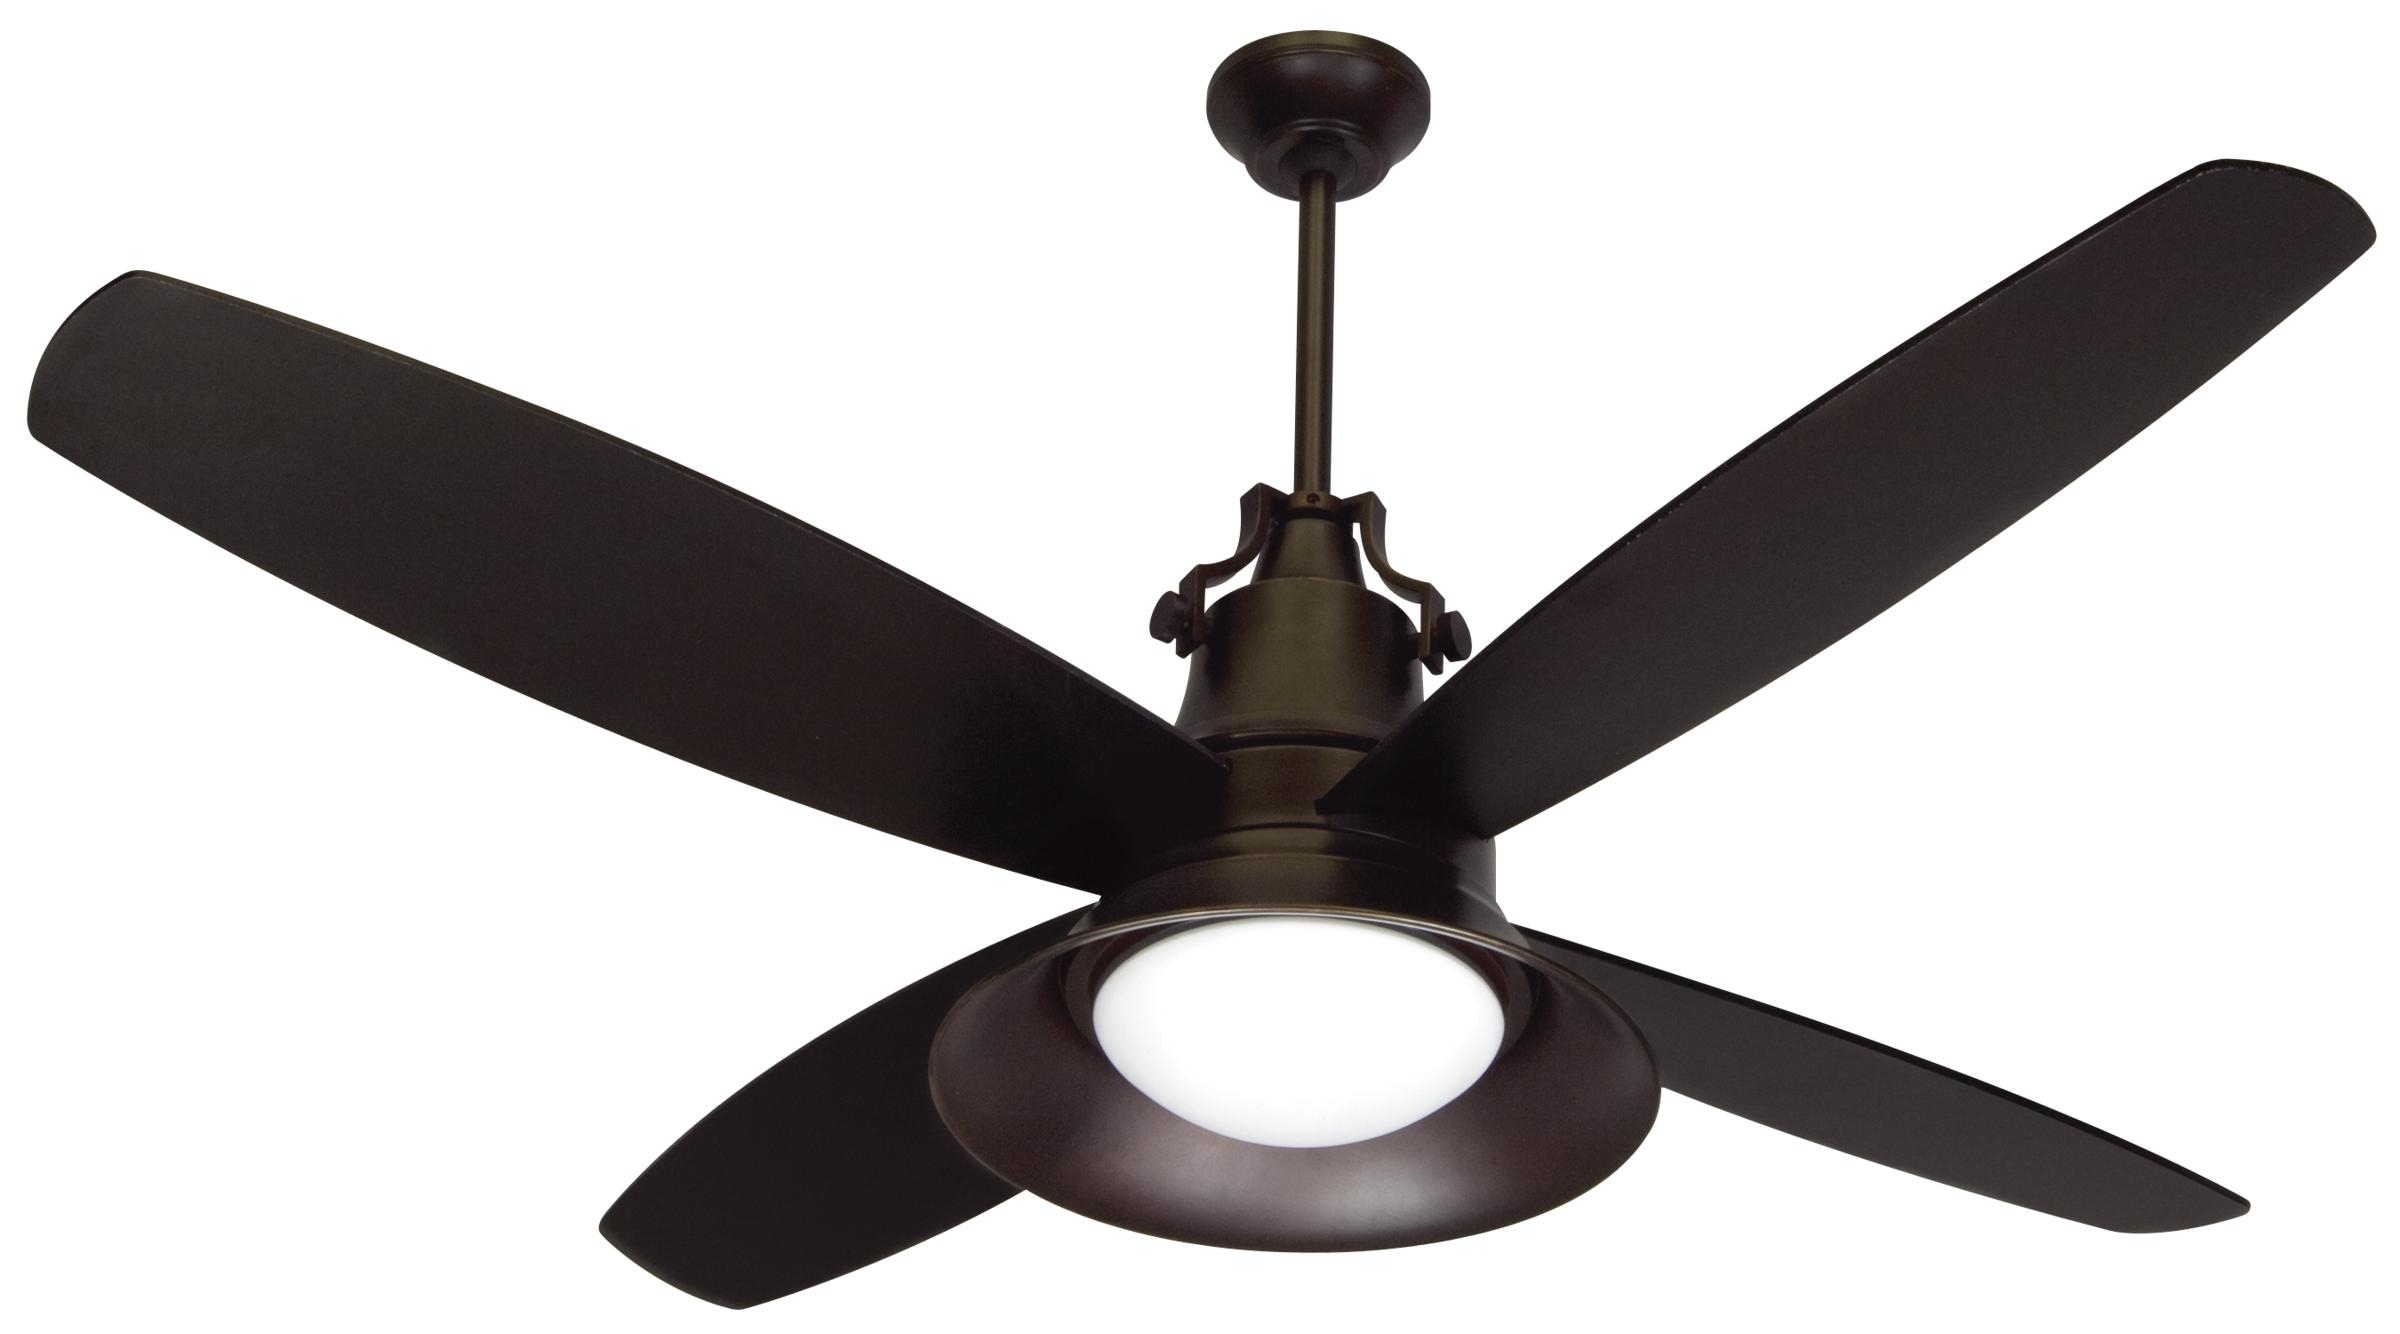 Ceiling: Amazing Black Industrial Ceiling Fan Large Industrial Pertaining To Current Industrial Outdoor Ceiling Fans With Light (View 4 of 20)